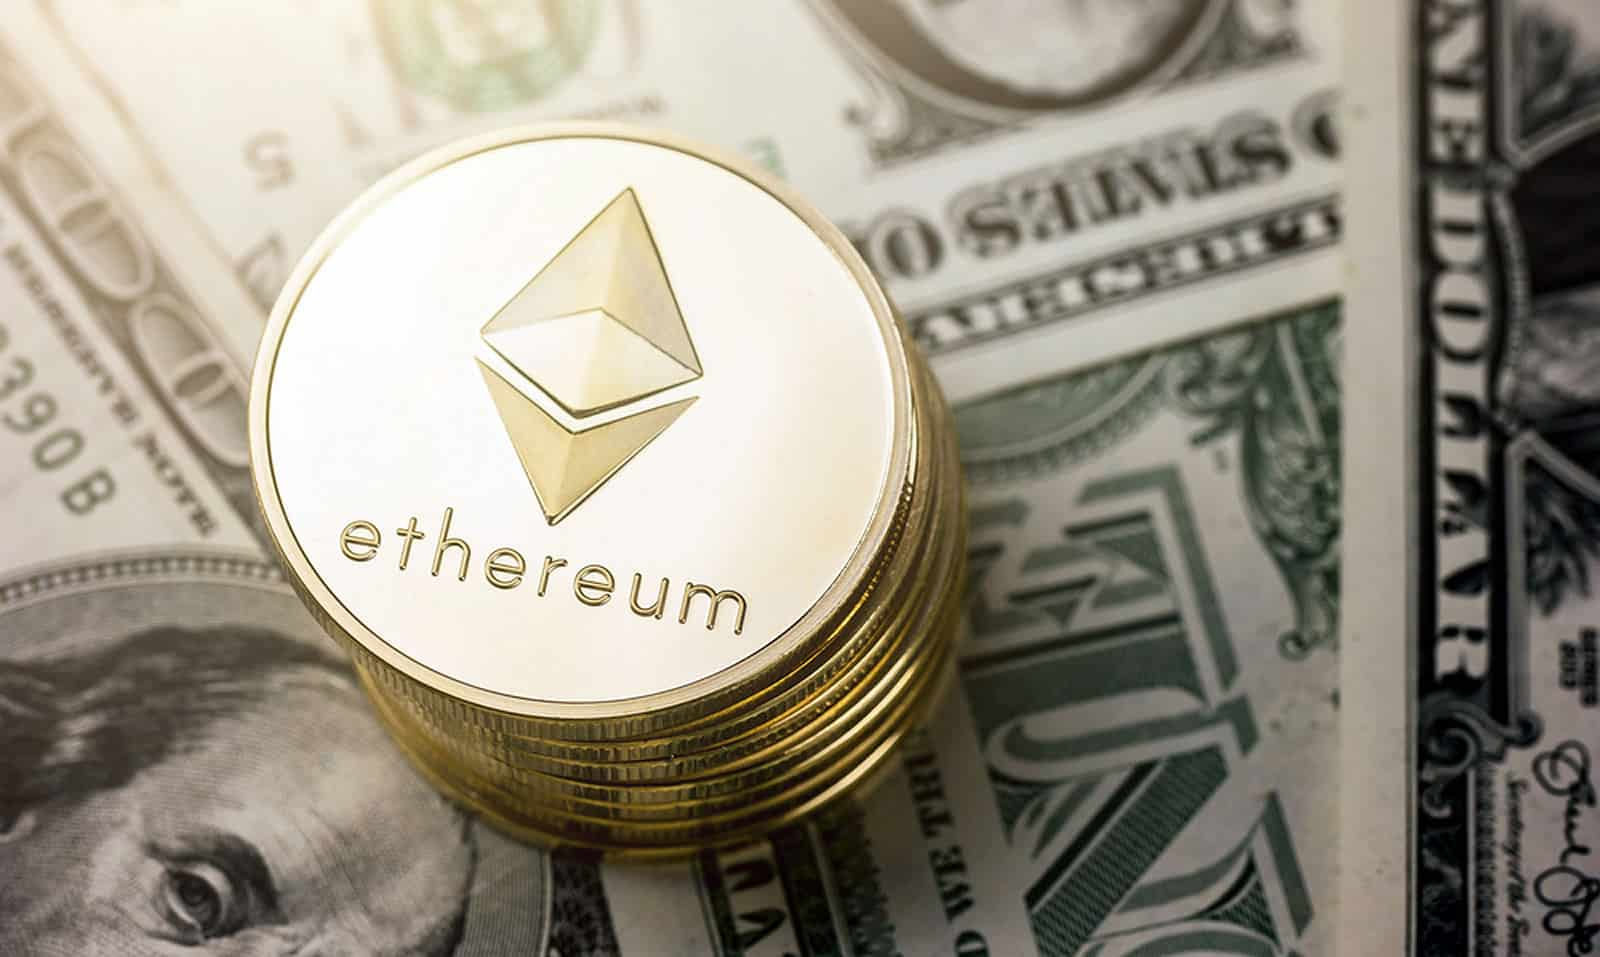 Ethereum Price Analysis: ETH Poised For Rebound To $360